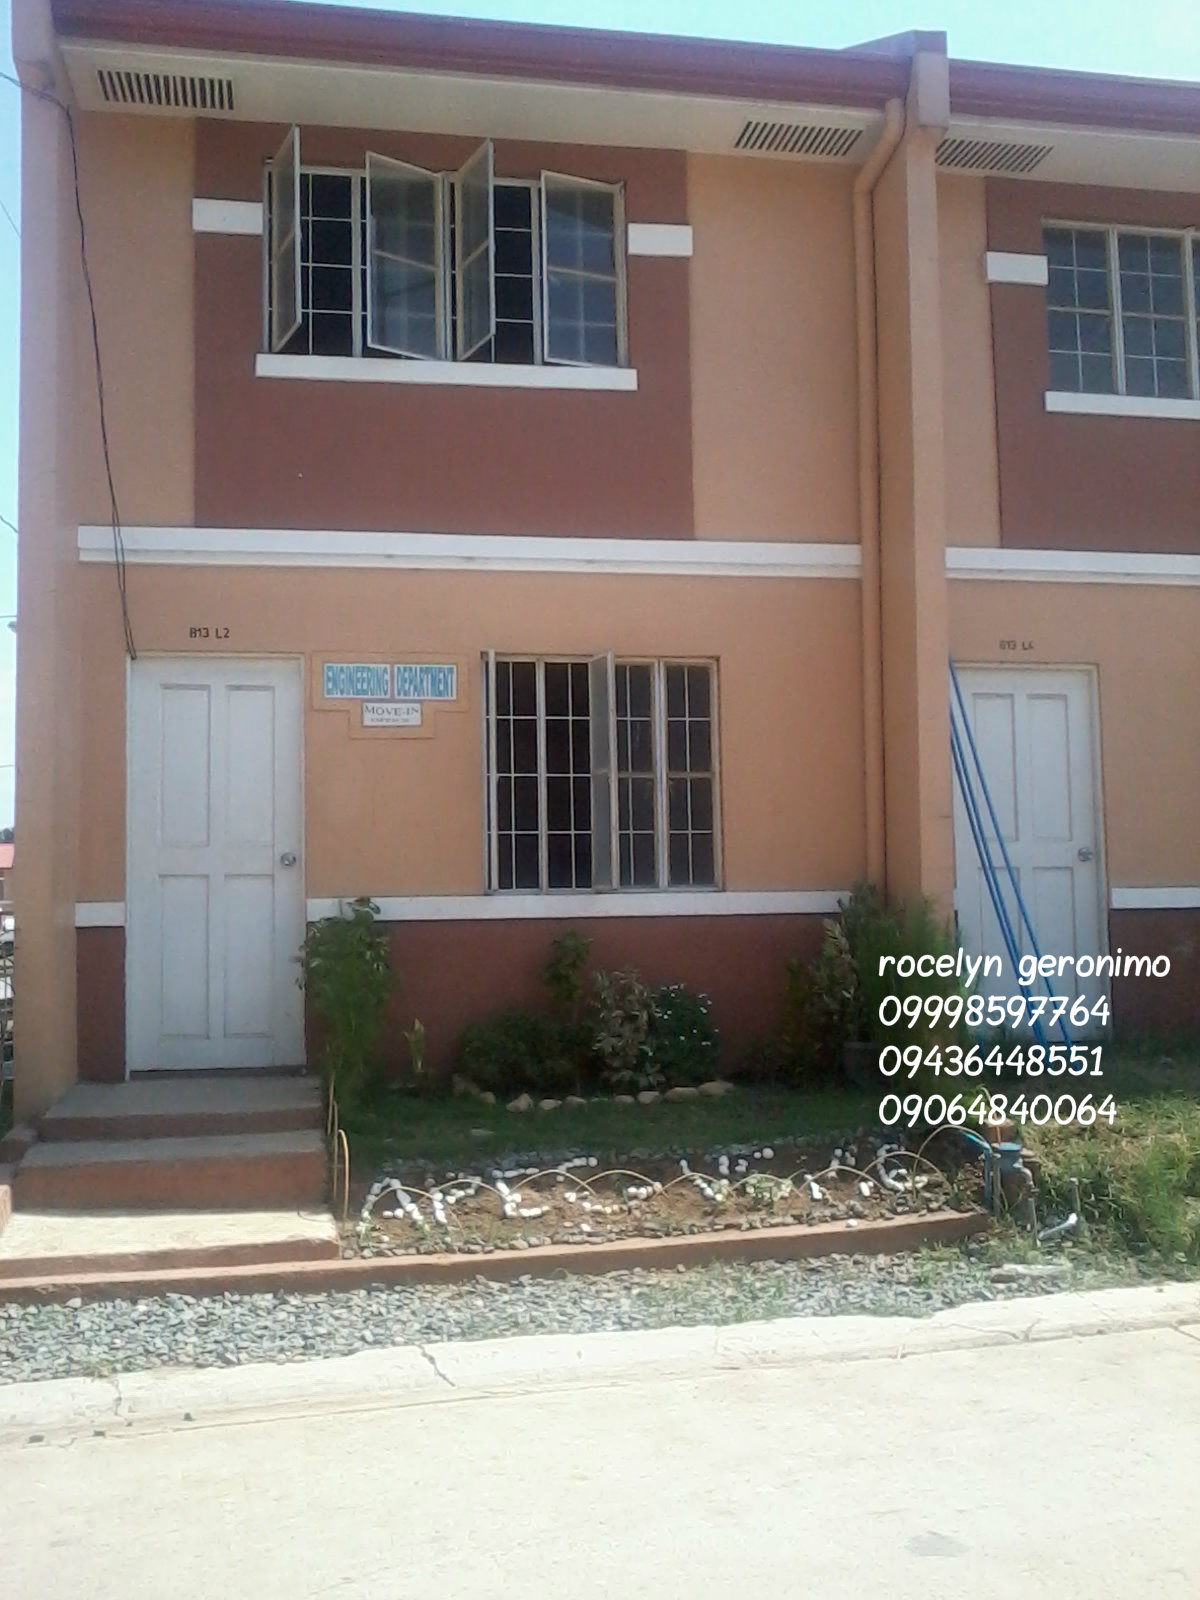 townhouse ready for occupancy villa San mateo6